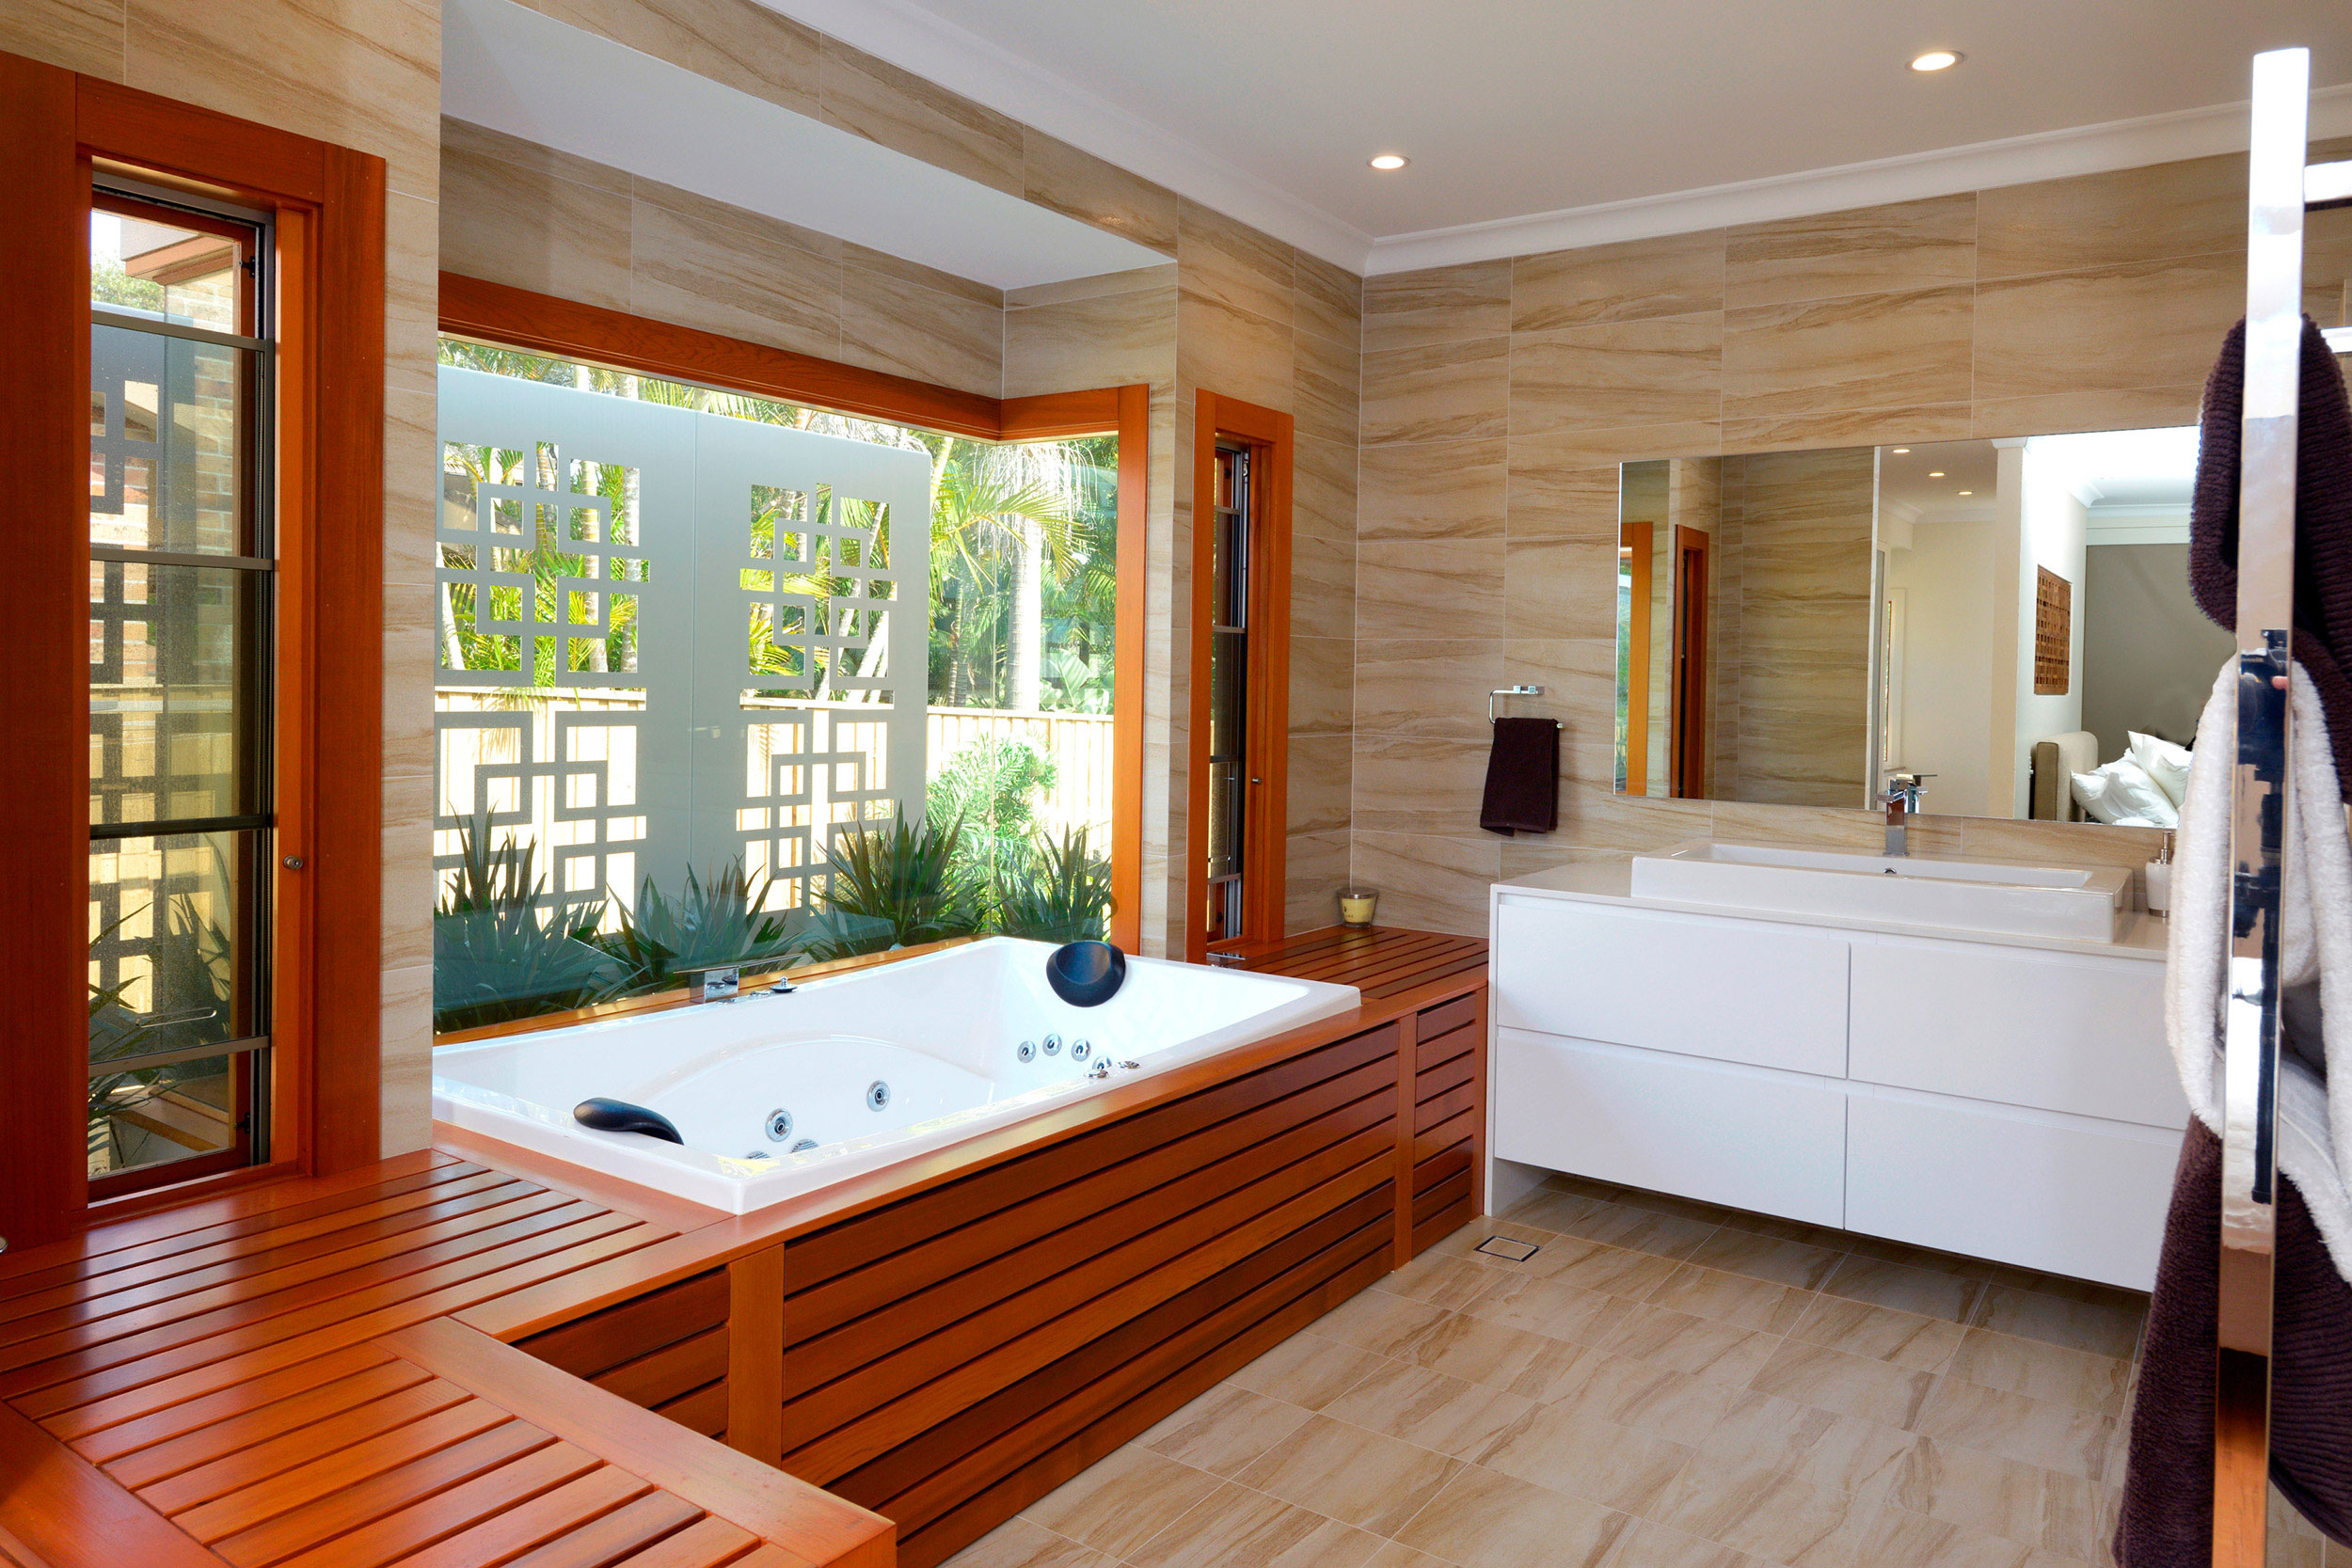 Glendalough – Luxury Home by Rustic Touch